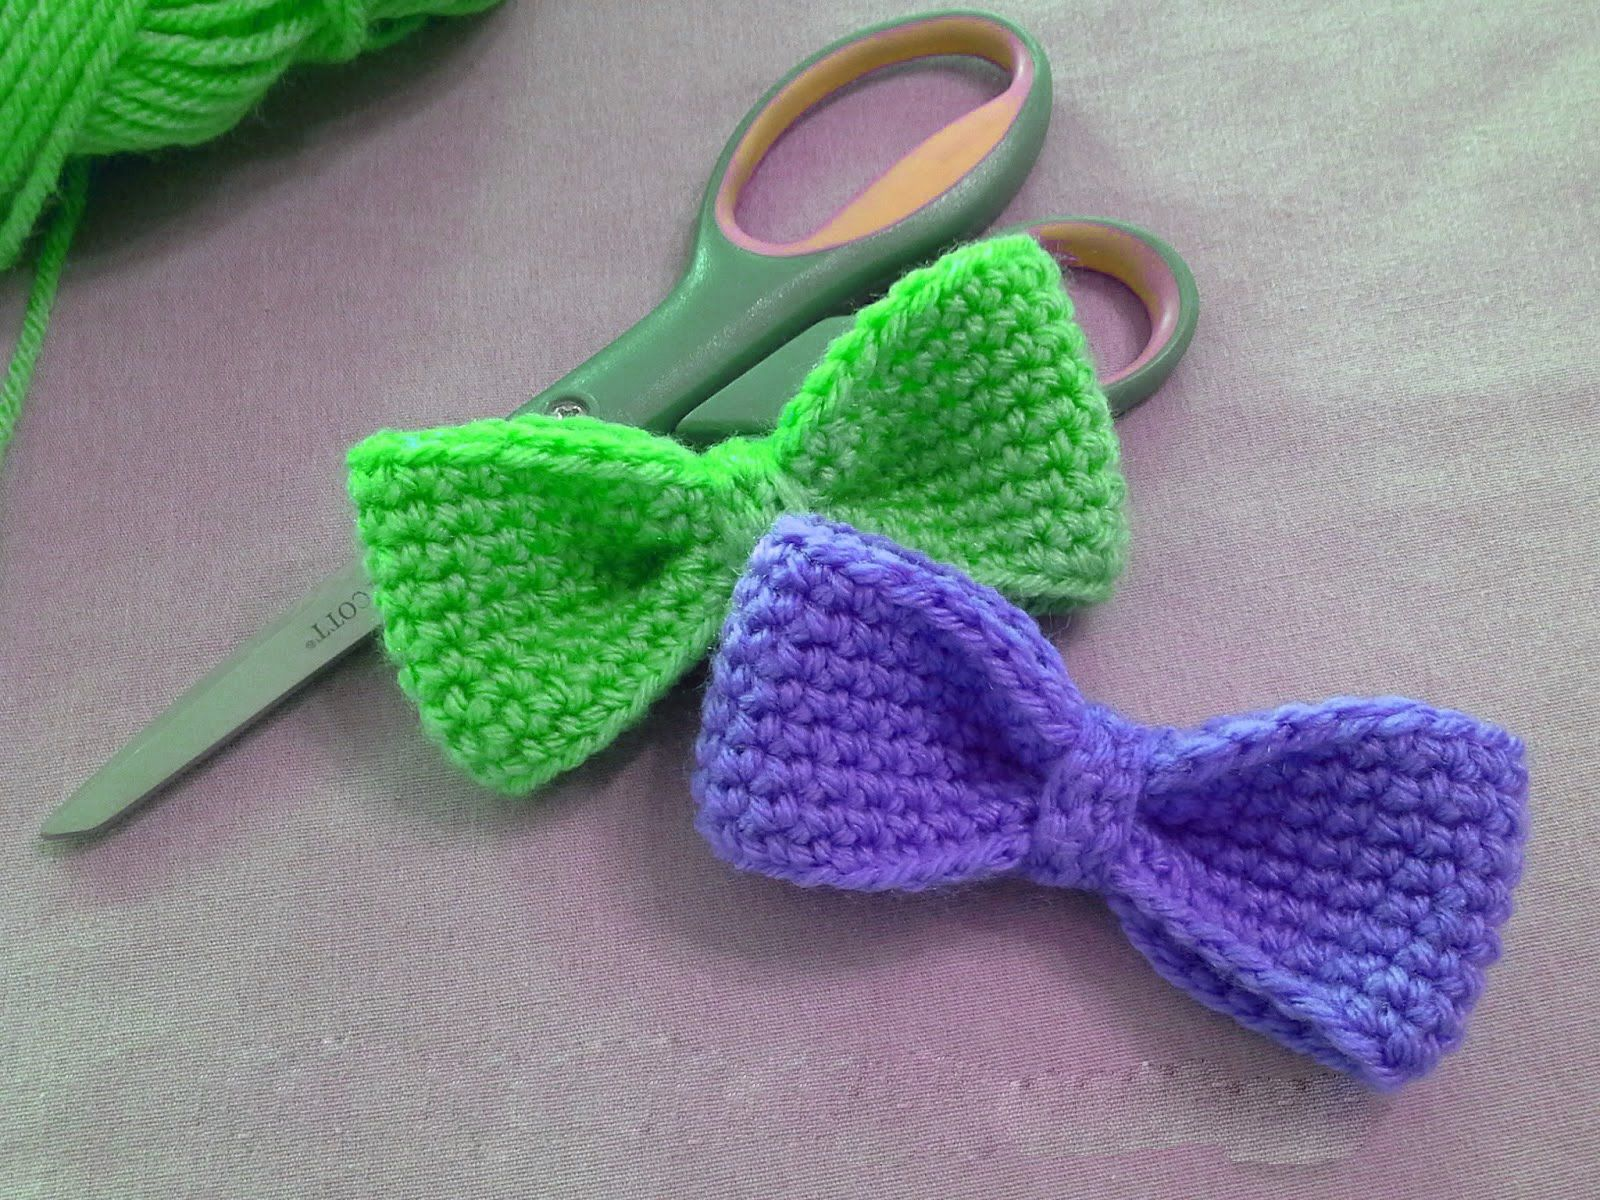 How to crochet bow step by ste | Crochet | Pinterest | El cabello ...